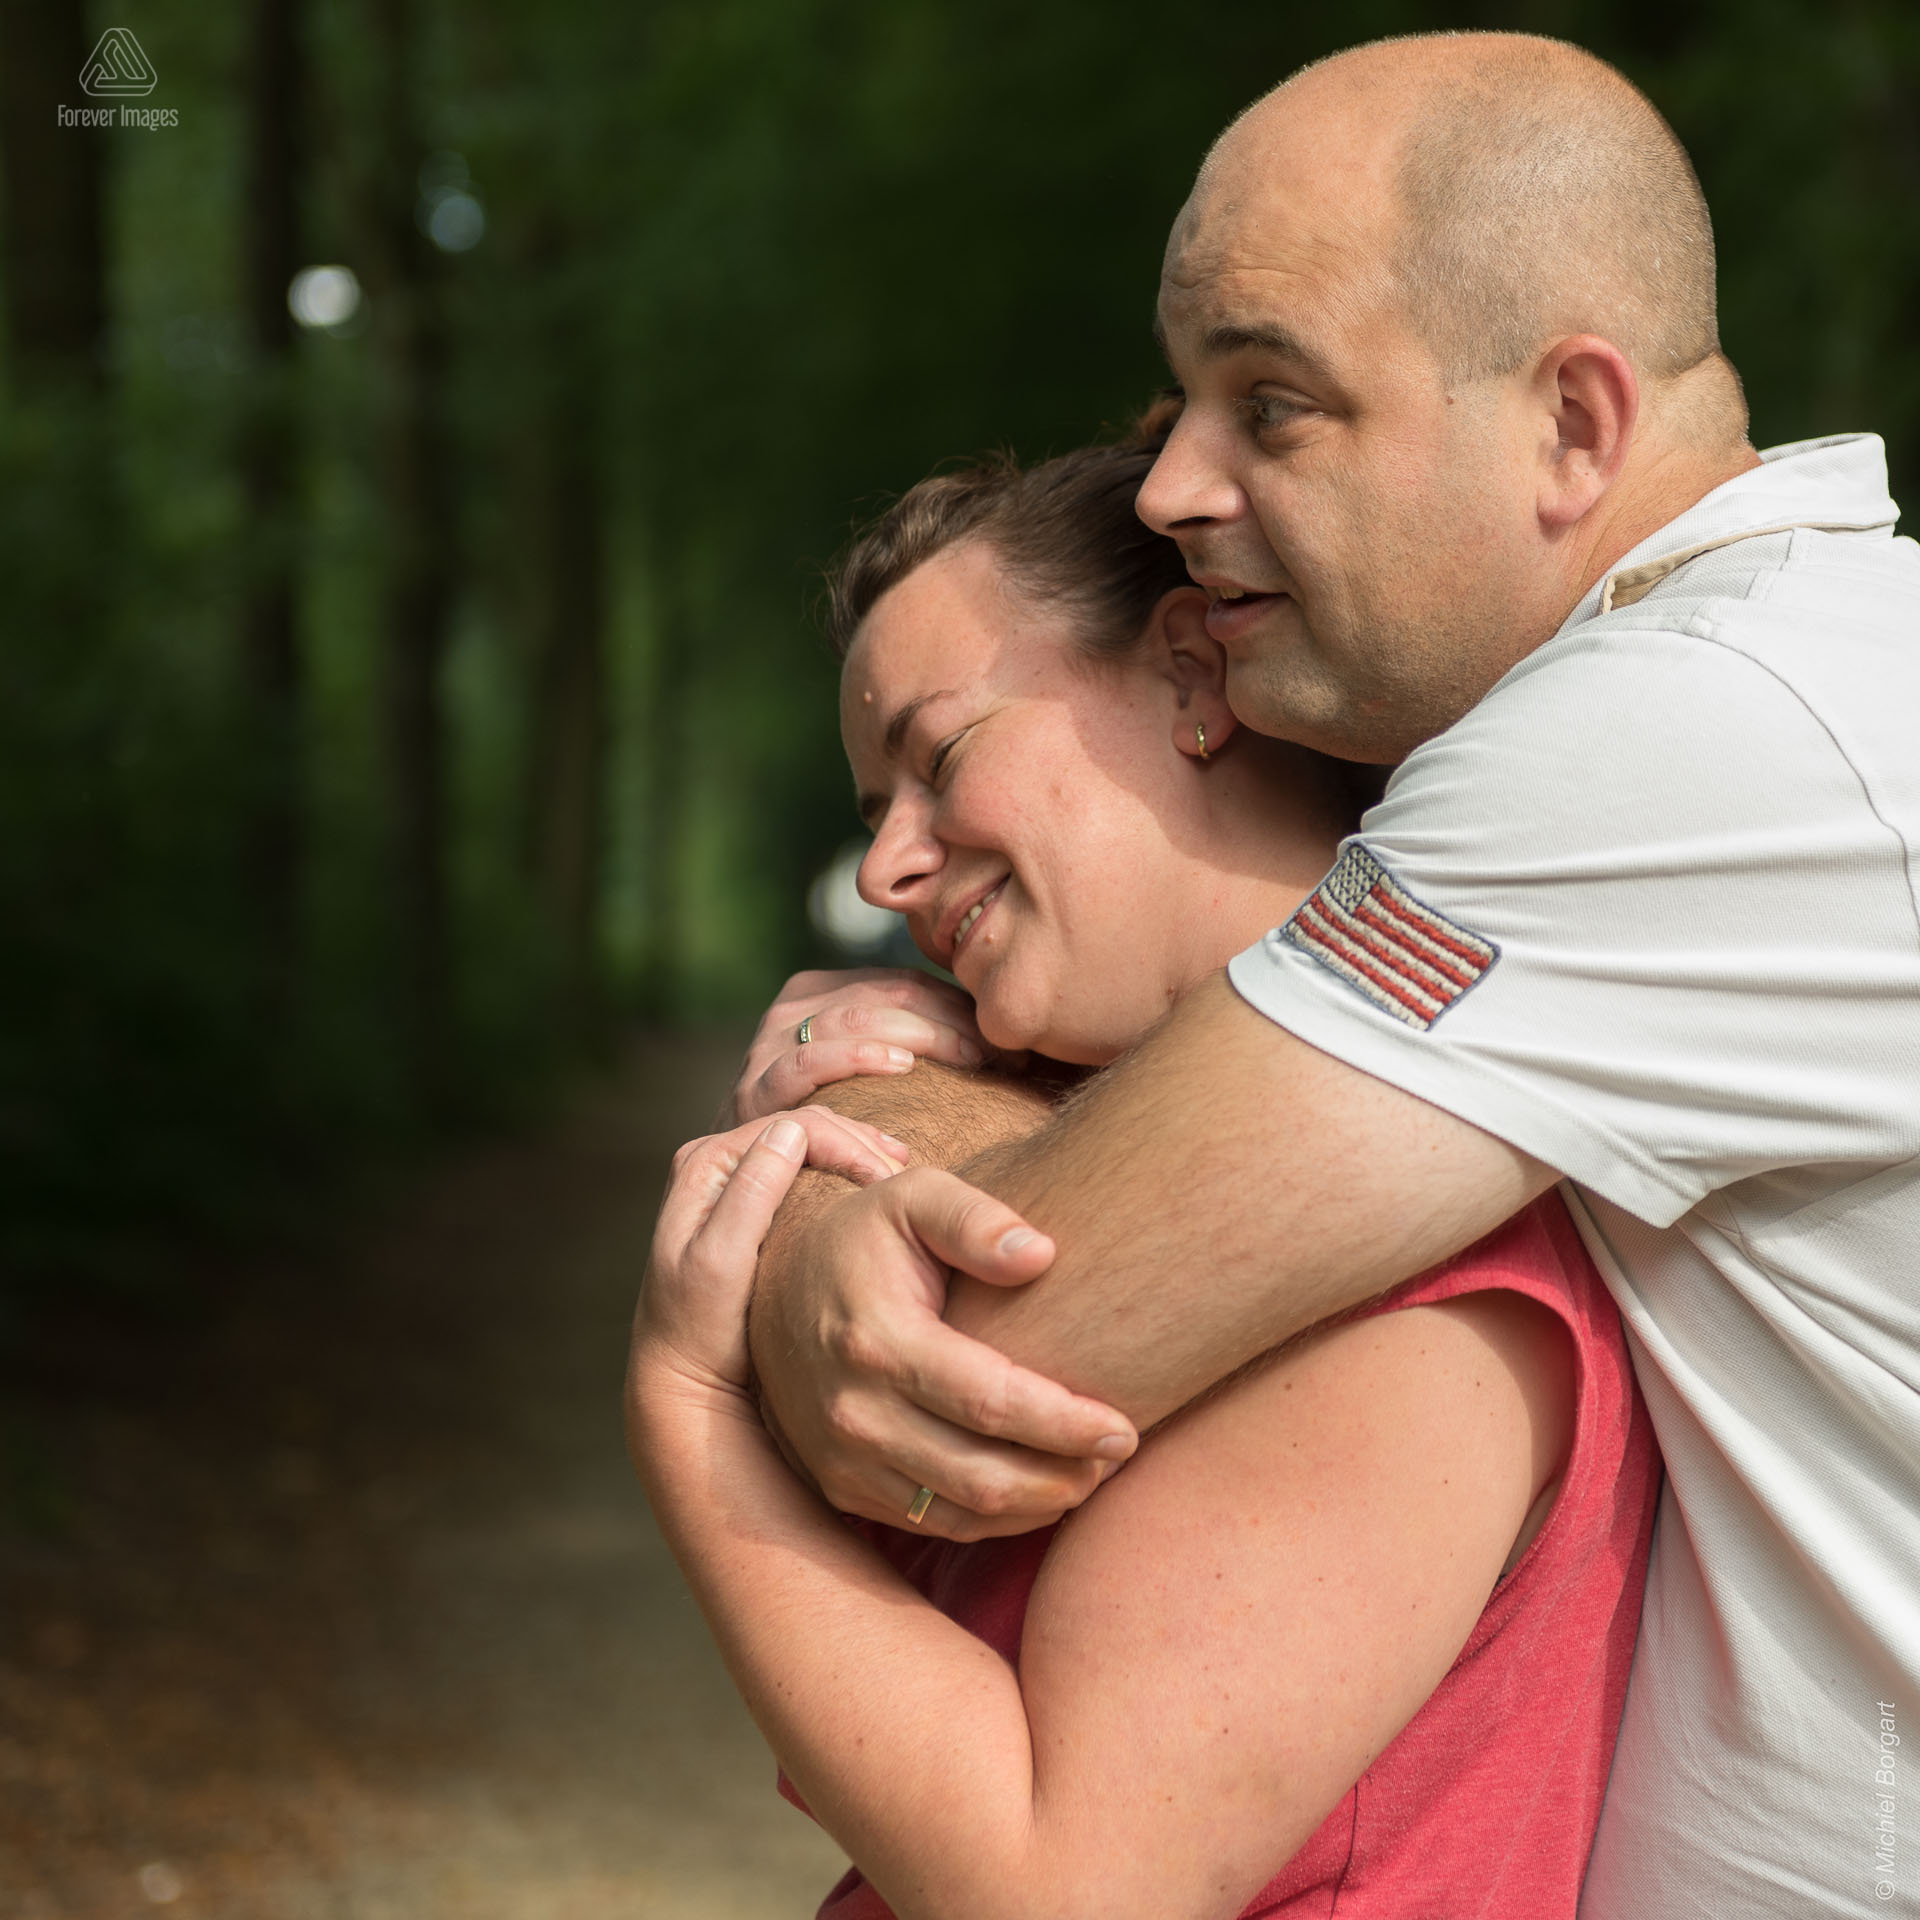 Loveshoot young married couple in forest | Portrait Photographer Michiel Borgart - Forever Images.